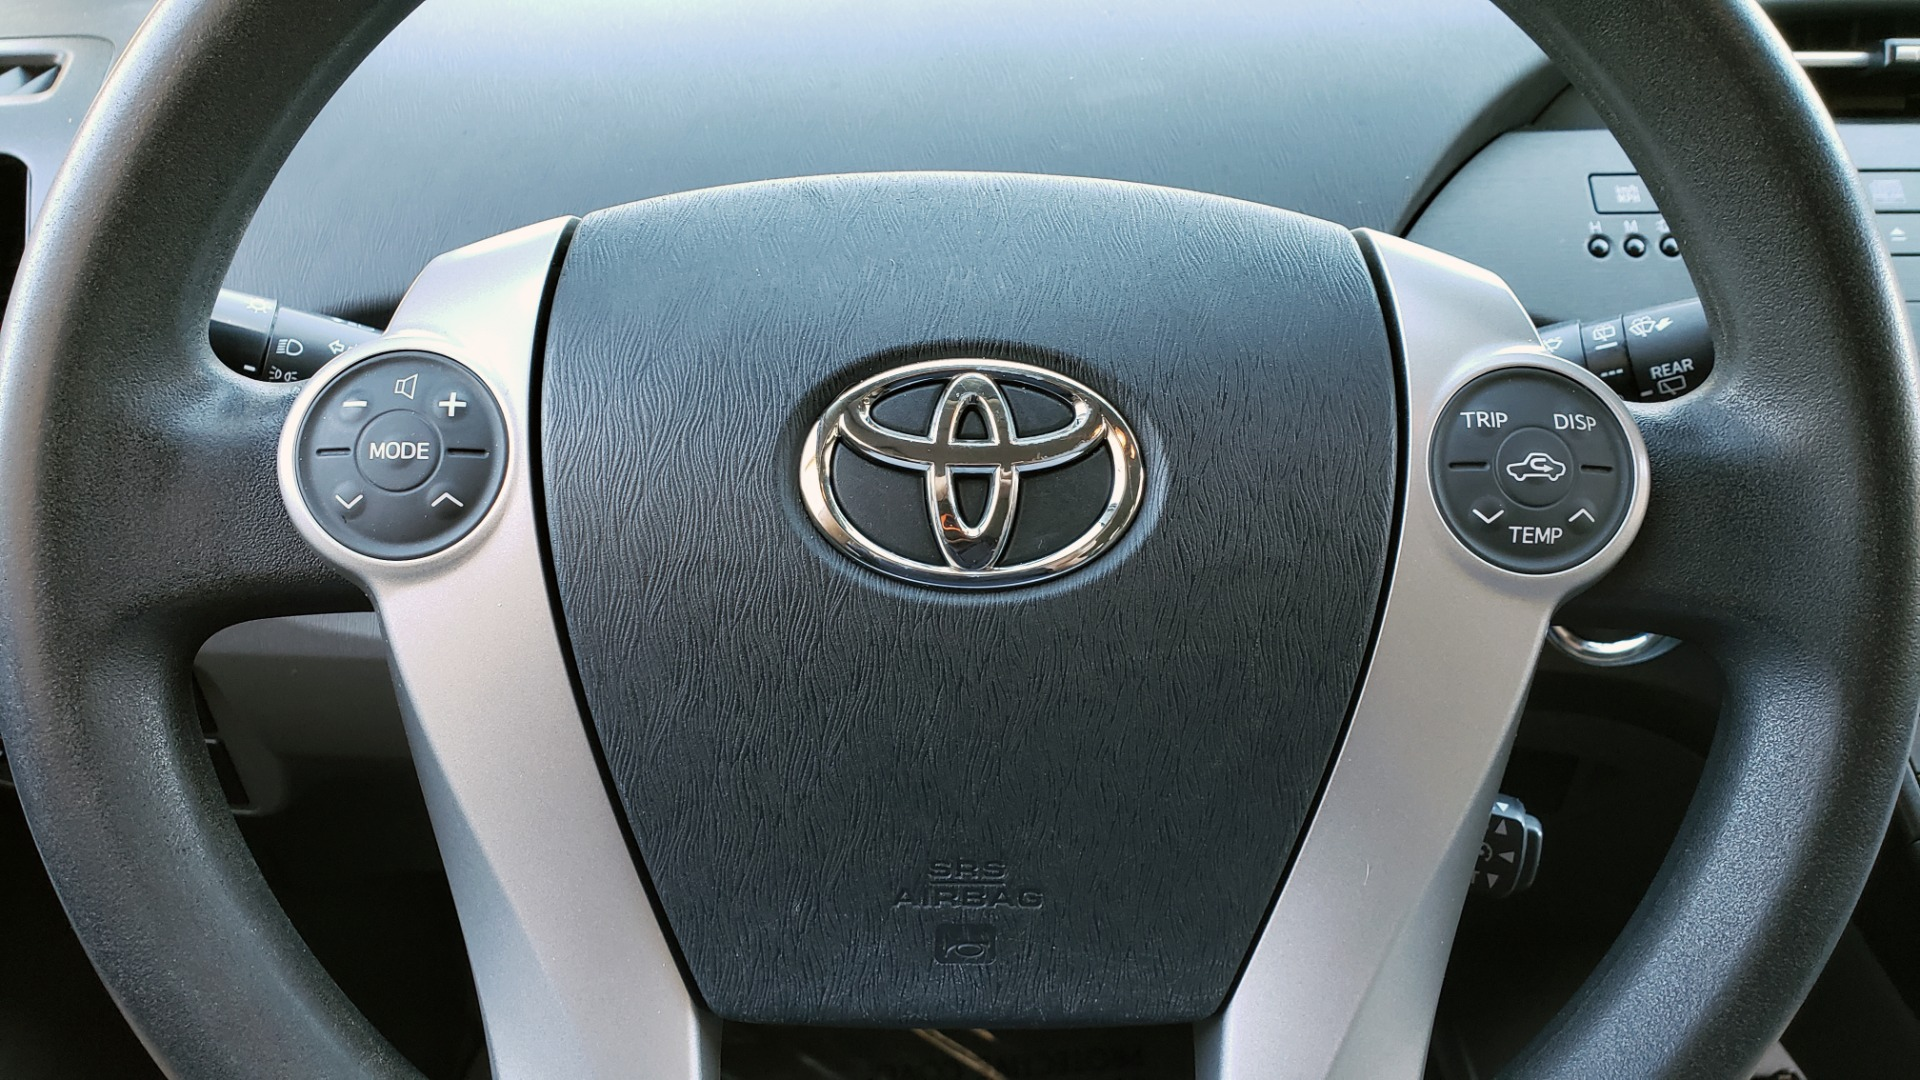 Used 2011 Toyota PRIUS ONE / HYBRID / 5-DOOR / HATCHBACK / 50MPG for sale Sold at Formula Imports in Charlotte NC 28227 38